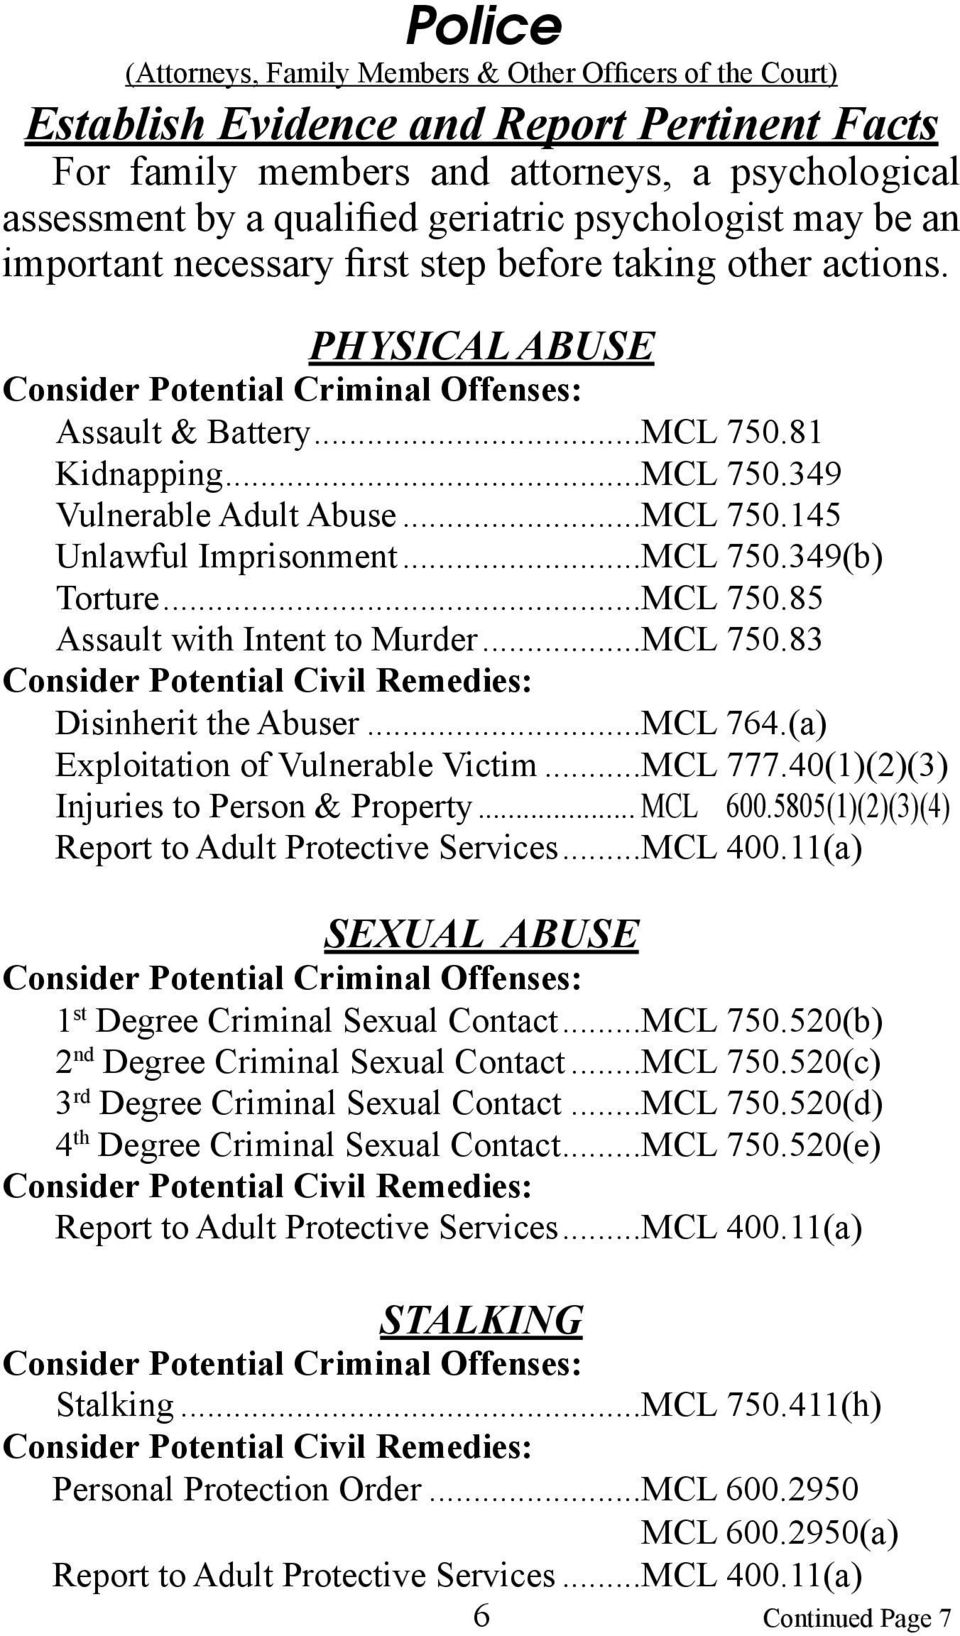 ..MCL 750.145 Unlawful Imprisonment...MCL 750.349(b) Torture...MCL 750.85 Assault with Intent to Murder...MCL 750.83 Consider Potential Civil Remedies: Disinherit the Abuser...MCL 764.